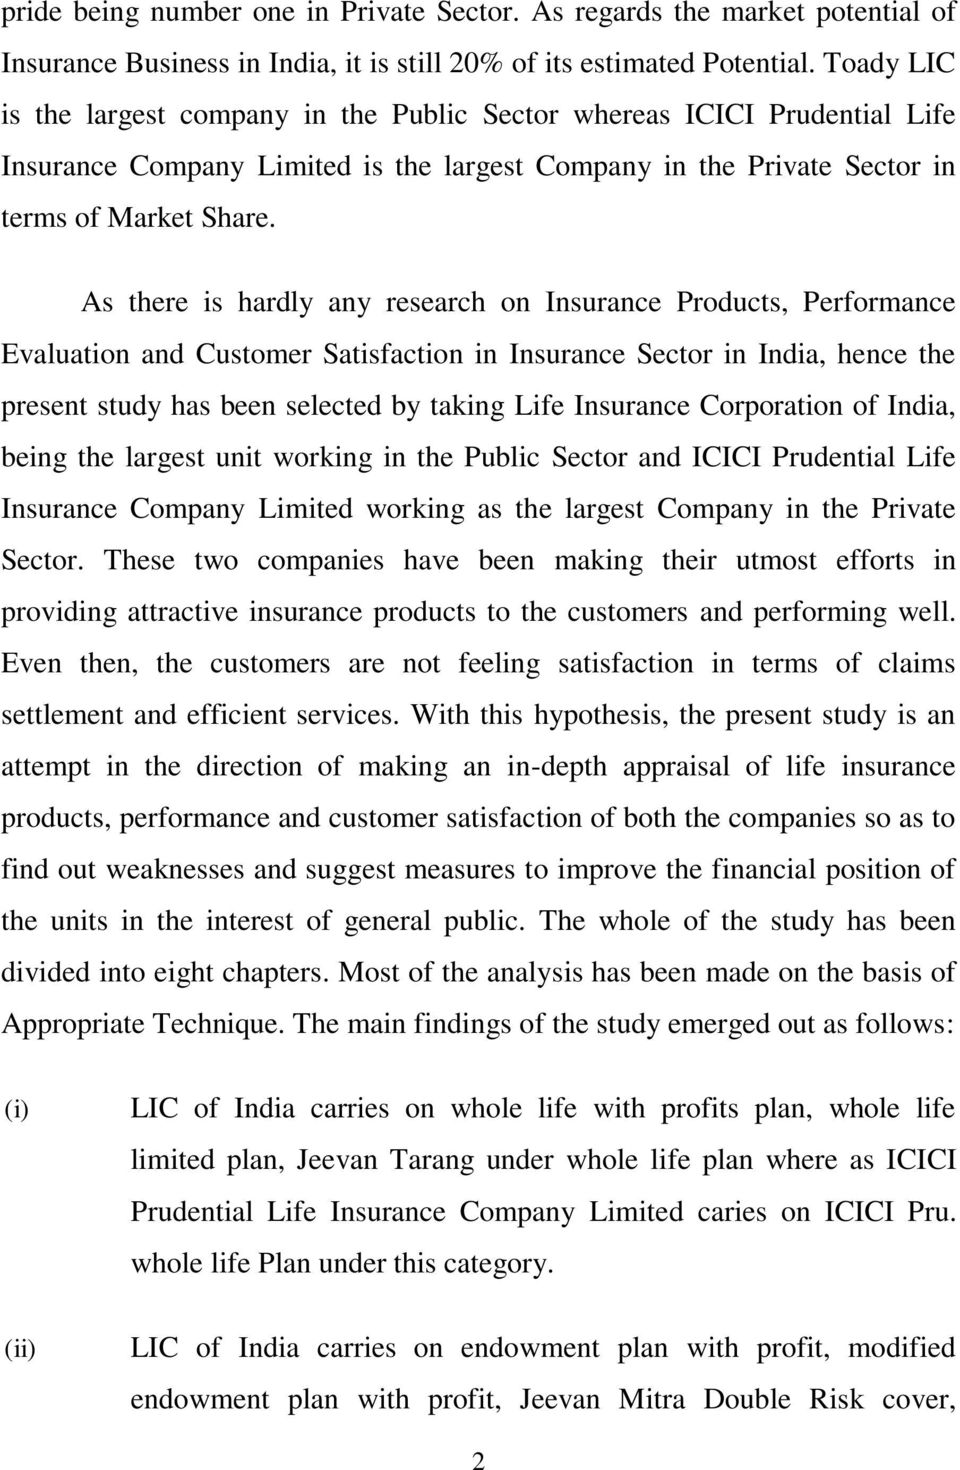 As there is hardly any research on Insurance Products, Performance Evaluation and Customer Satisfaction in Insurance Sector in India, hence the present study has been selected by taking Life